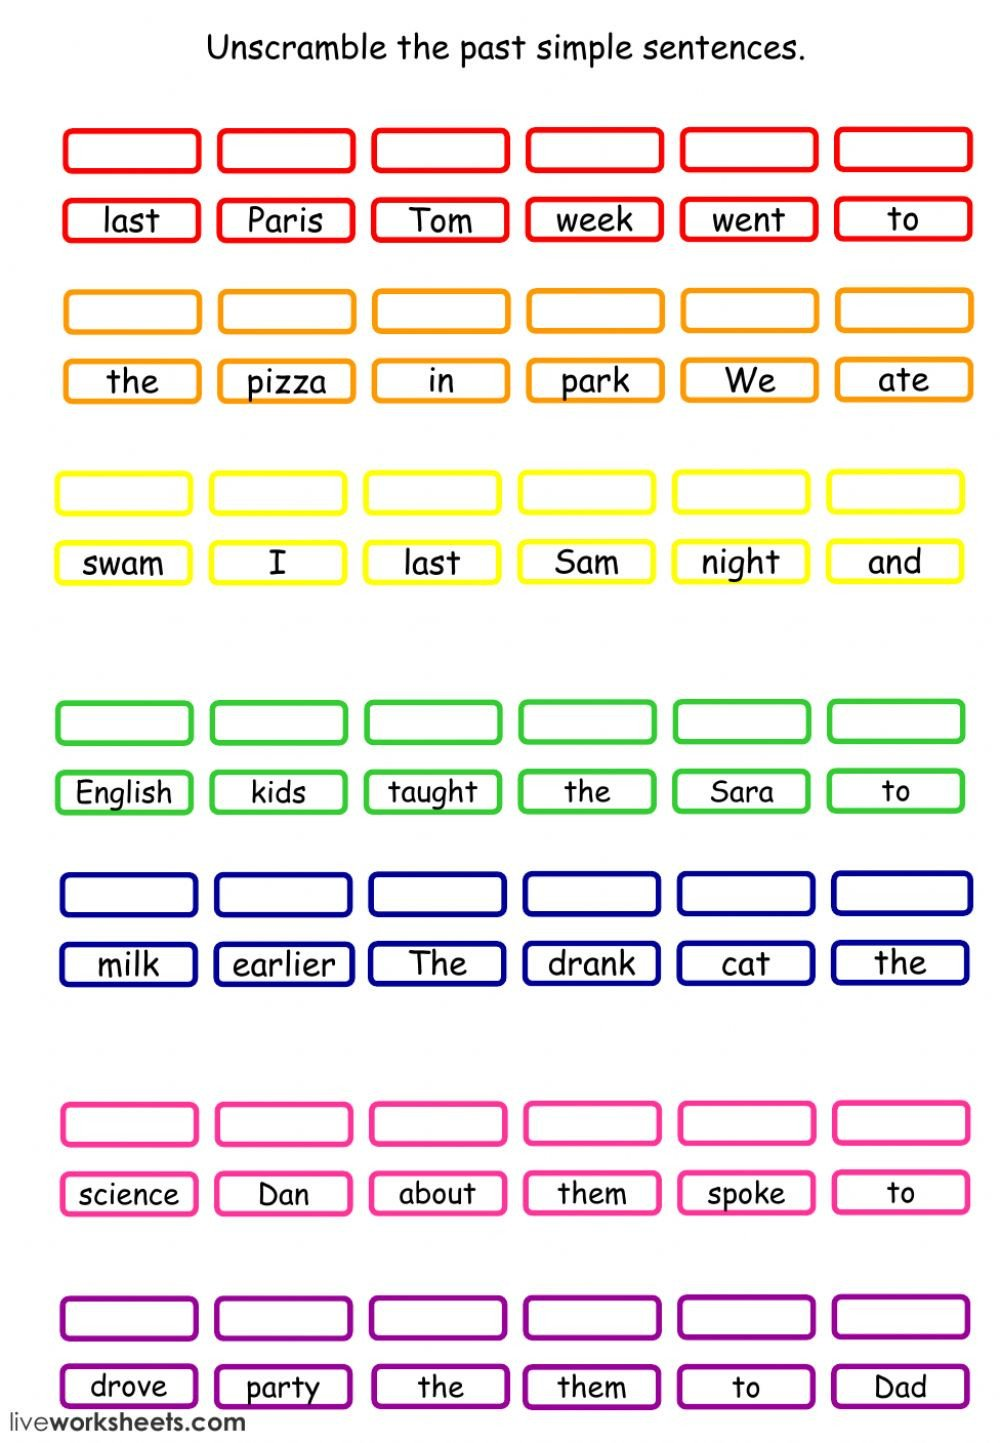 Scrambled Sentences Worksheets 2nd Grade Past Simple Unscramble the Sentences Interactive Worksheet